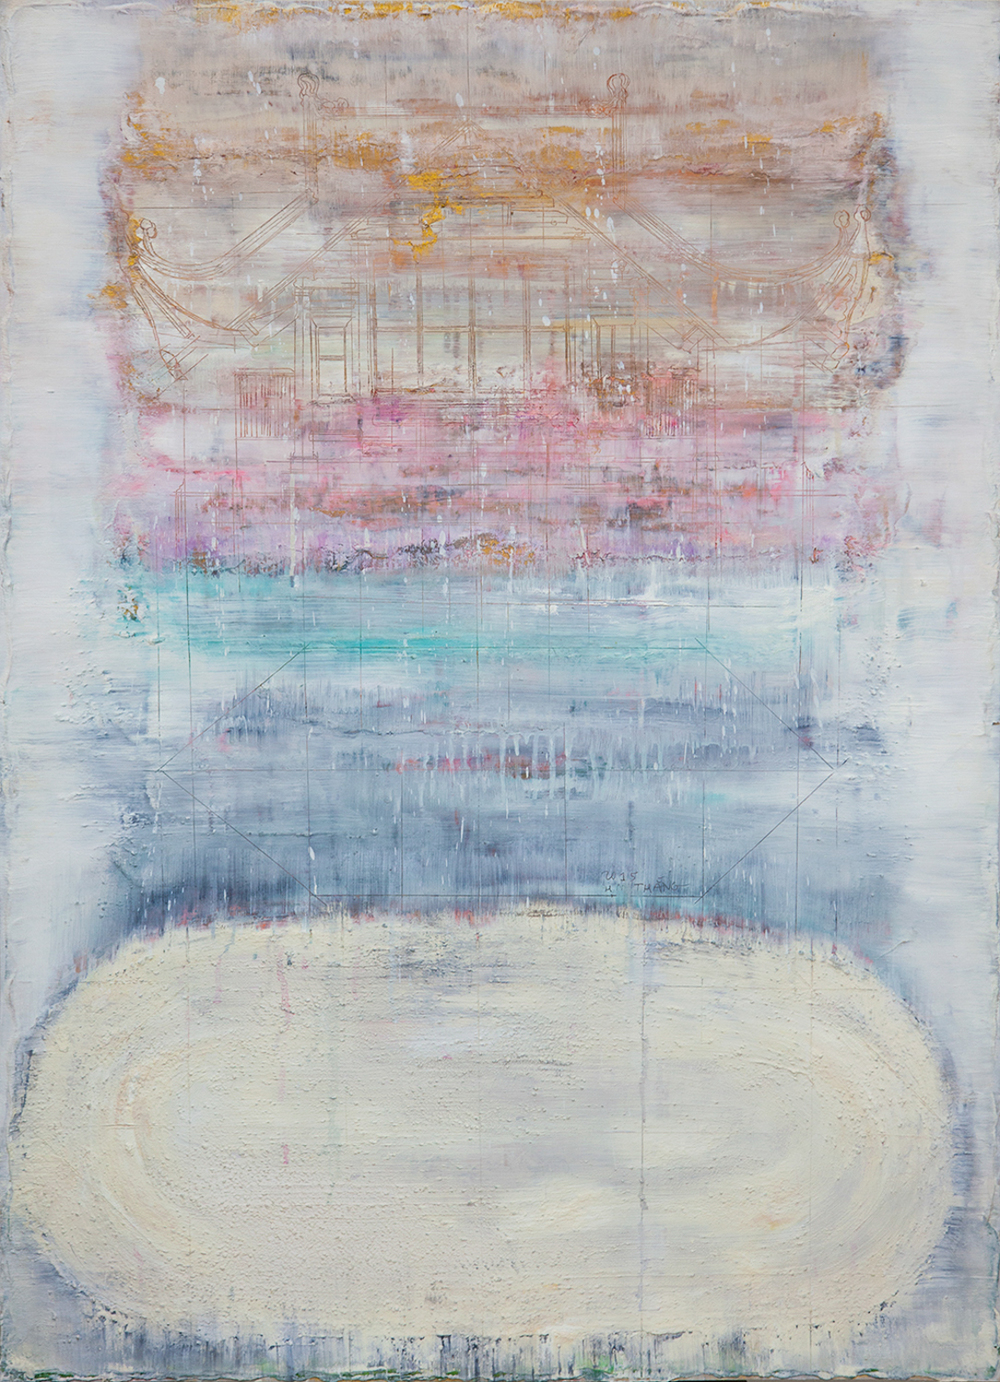 Foggy Morning, 2015, Mixed Media on Paper, 102 x 72.5 cm, HA Manh Thang